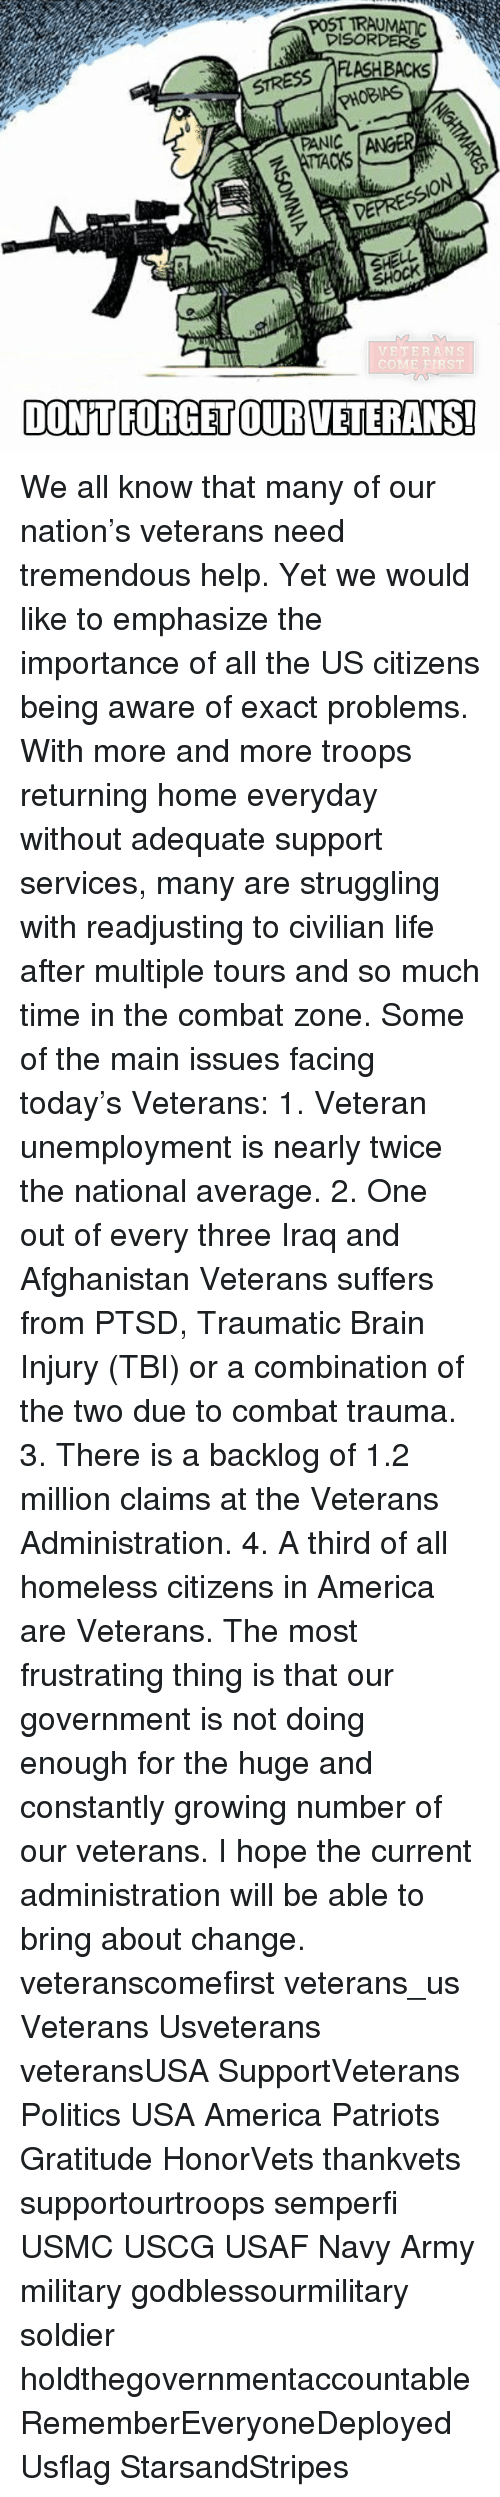 Memes, 🤖, and Flash: DISORDERS  FLASH BACKS  STRESS  PHOBIAS  ANIC TANGER  SHOCK  VETERANS  COME FIRST  DONT FORGETOURVETERANSI We all know that many of our nation's veterans need tremendous help. Yet we would like to emphasize the importance of all the US citizens being aware of exact problems. With more and more troops returning home everyday without adequate support services, many are struggling with readjusting to civilian life after multiple tours and so much time in the combat zone. Some of the main issues facing today's Veterans: 1. Veteran unemployment is nearly twice the national average. 2. One out of every three Iraq and Afghanistan Veterans suffers from PTSD, Traumatic Brain Injury (TBI) or a combination of the two due to combat trauma. 3. There is a backlog of 1.2 million claims at the Veterans Administration. 4. A third of all homeless citizens in America are Veterans. The most frustrating thing is that our government is not doing enough for the huge and constantly growing number of our veterans. I hope the current administration will be able to bring about change. veteranscomefirst veterans_us Veterans Usveterans veteransUSA SupportVeterans Politics USA America Patriots Gratitude HonorVets thankvets supportourtroops semperfi USMC USCG USAF Navy Army military godblessourmilitary soldier holdthegovernmentaccountable RememberEveryoneDeployed Usflag StarsandStripes